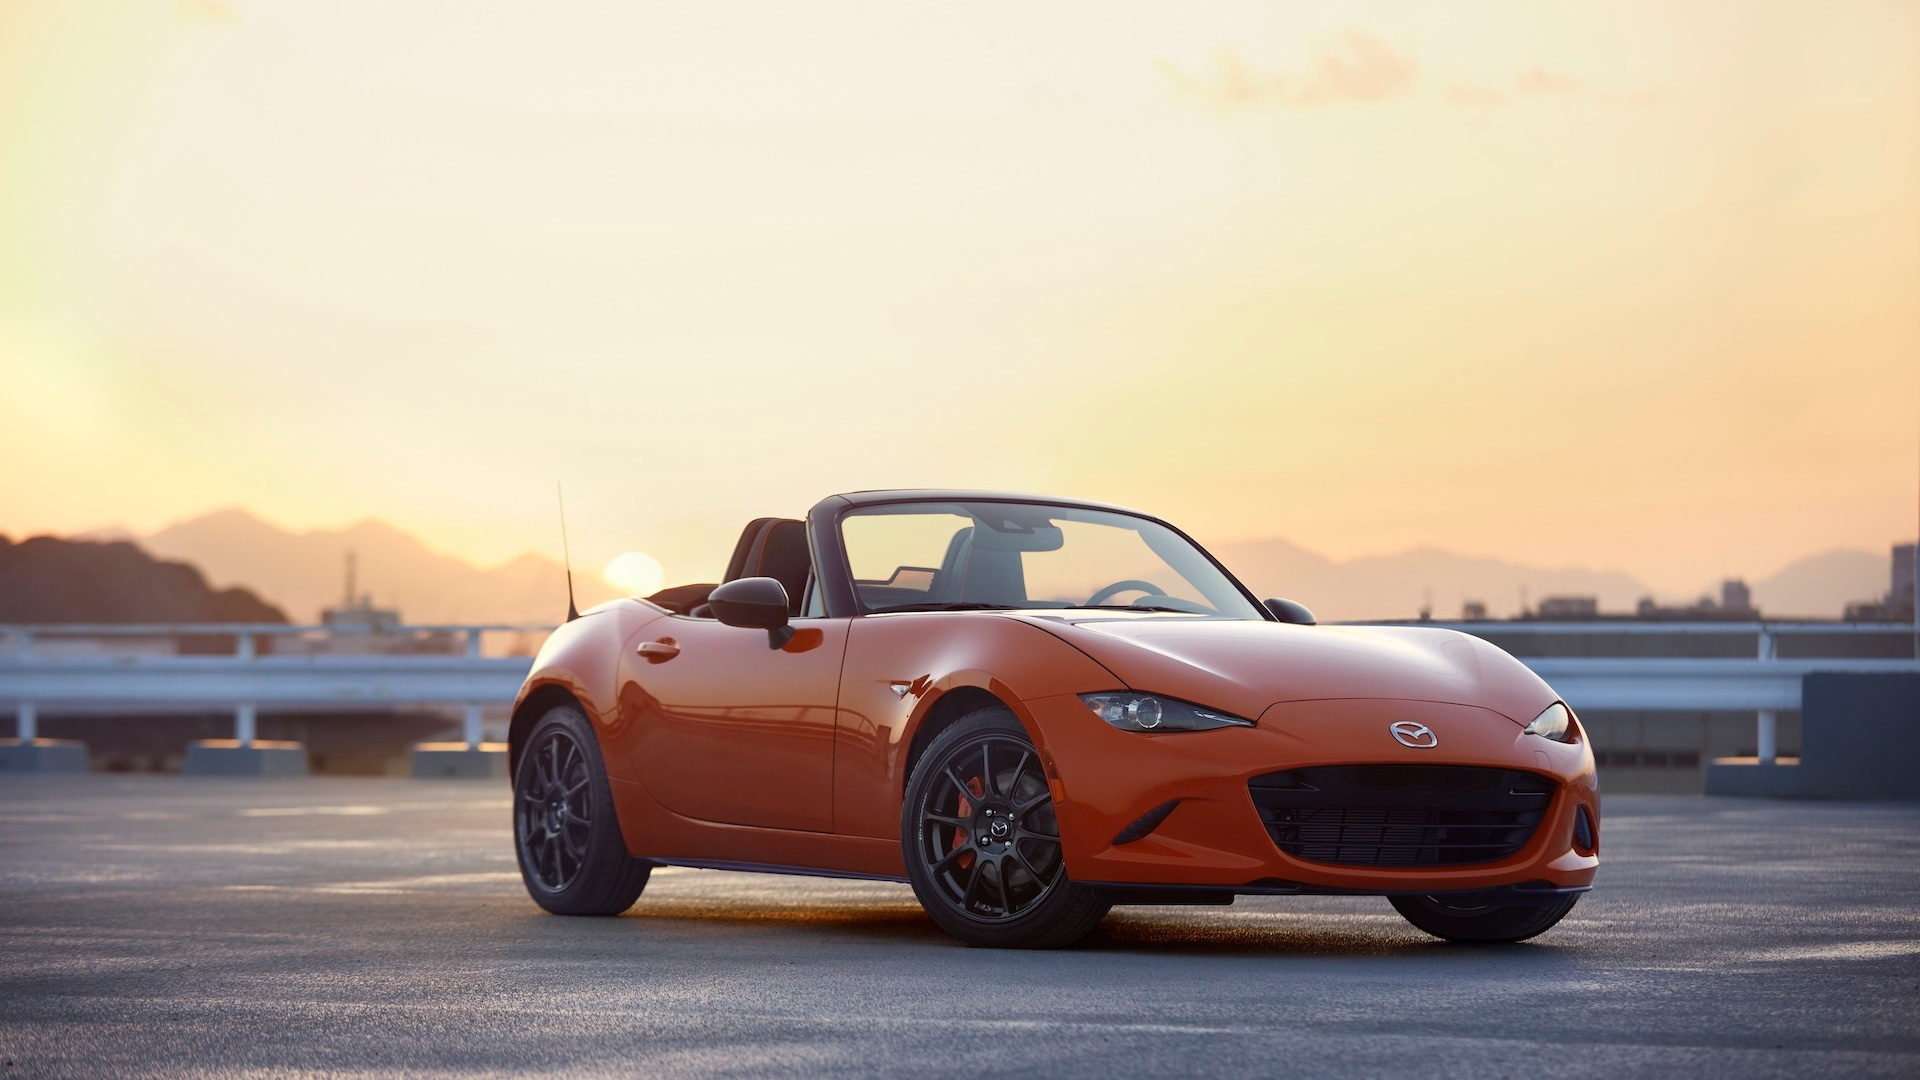 30 years of the Mazda MX-5 Miata